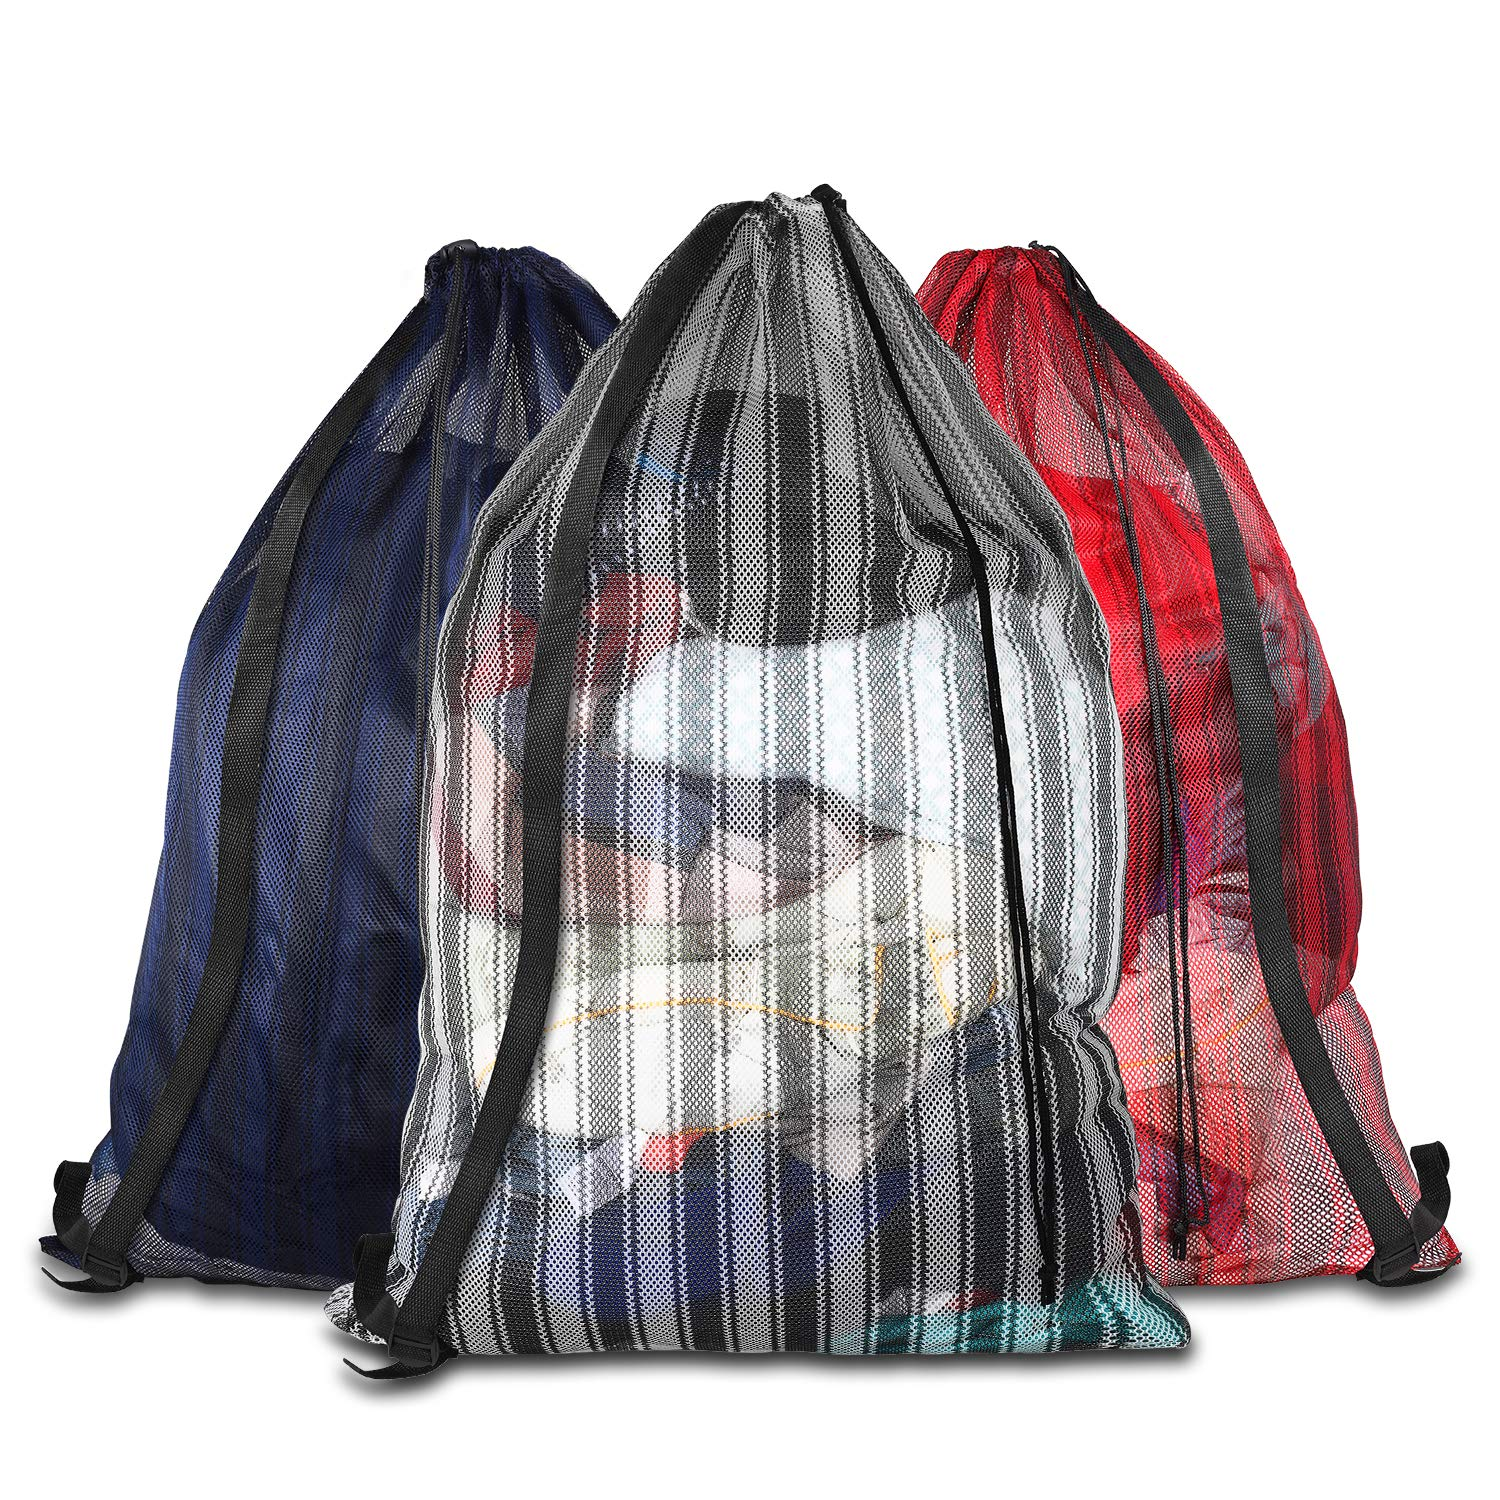 Daly Kate Mesh Equipment Bags,Durable Ball Bags Adjustable Shoulder Strap 24\